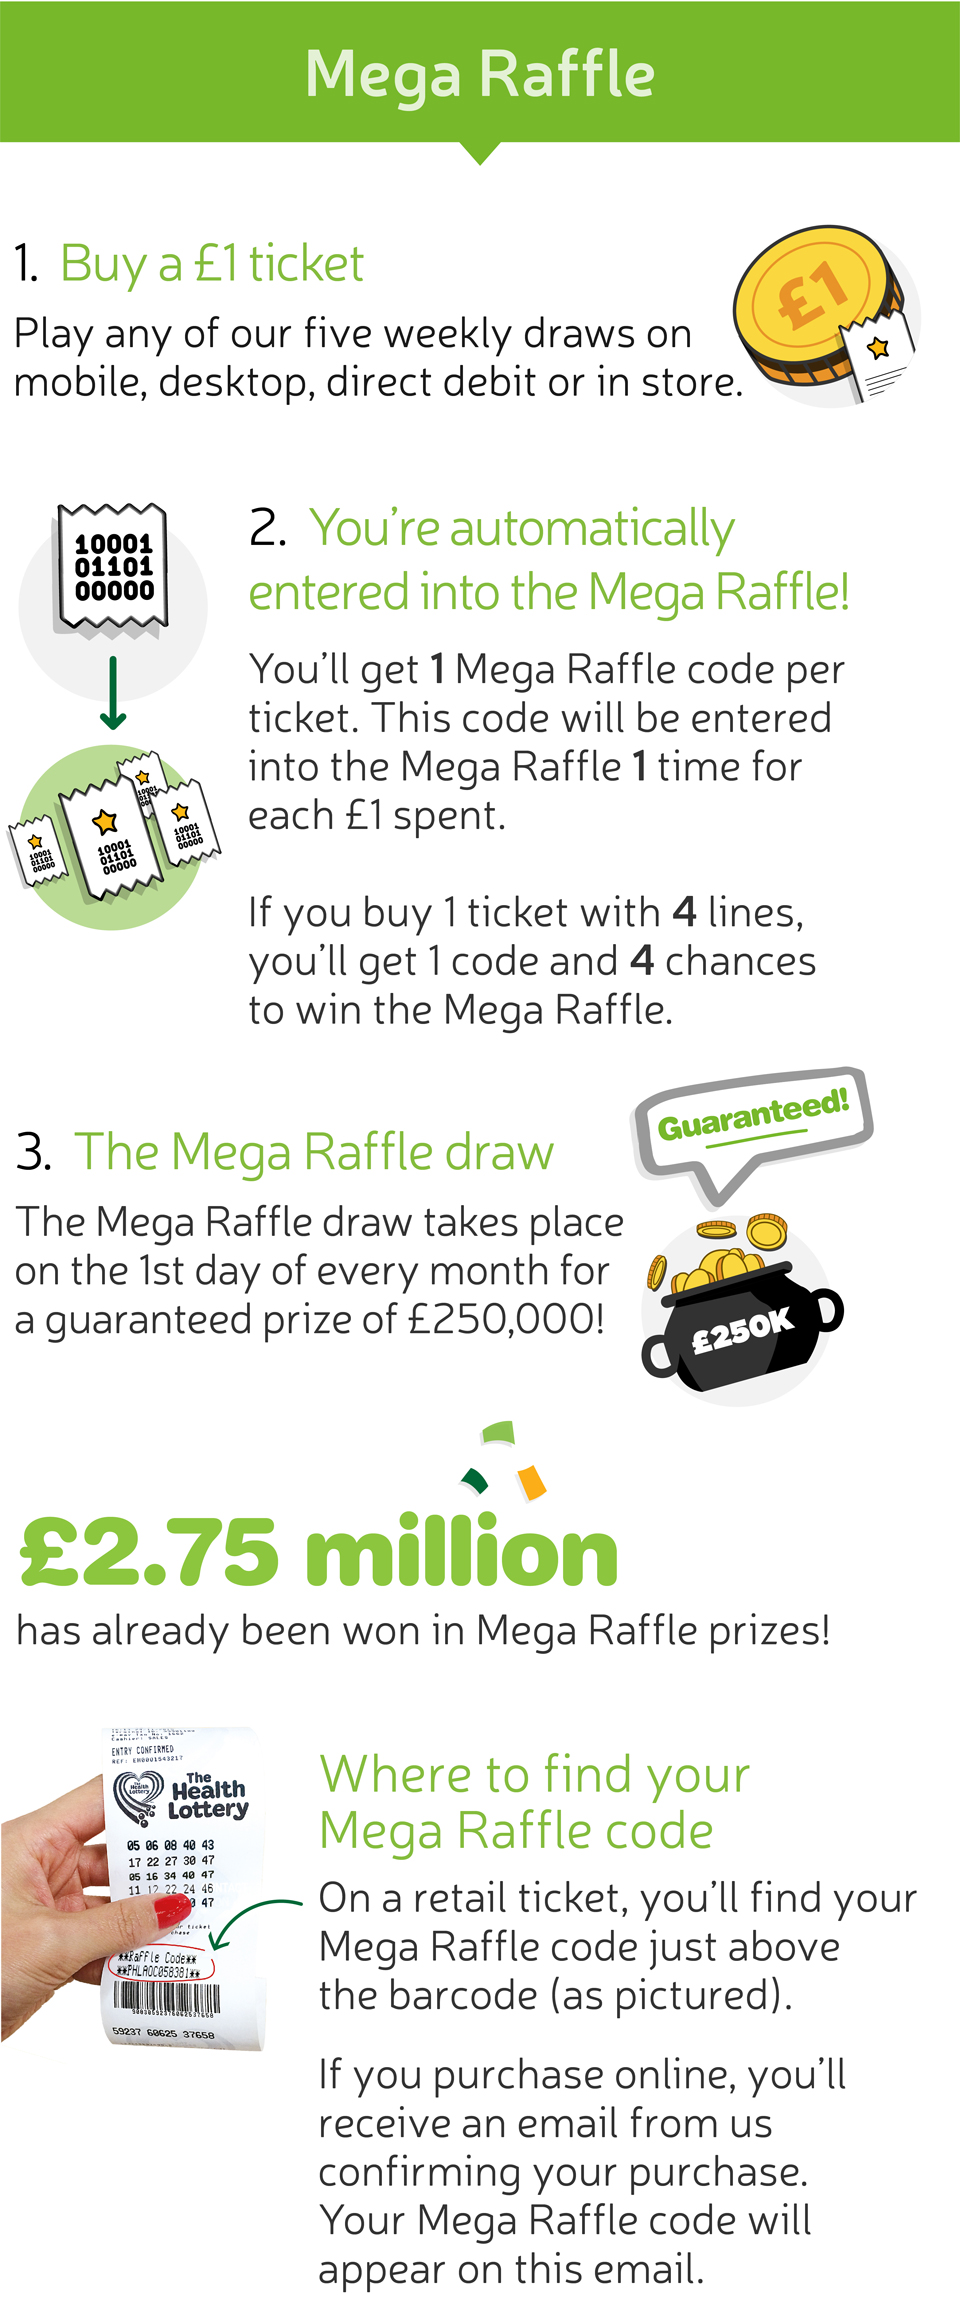 How To Play The Mega Raffle - The Health Lottery